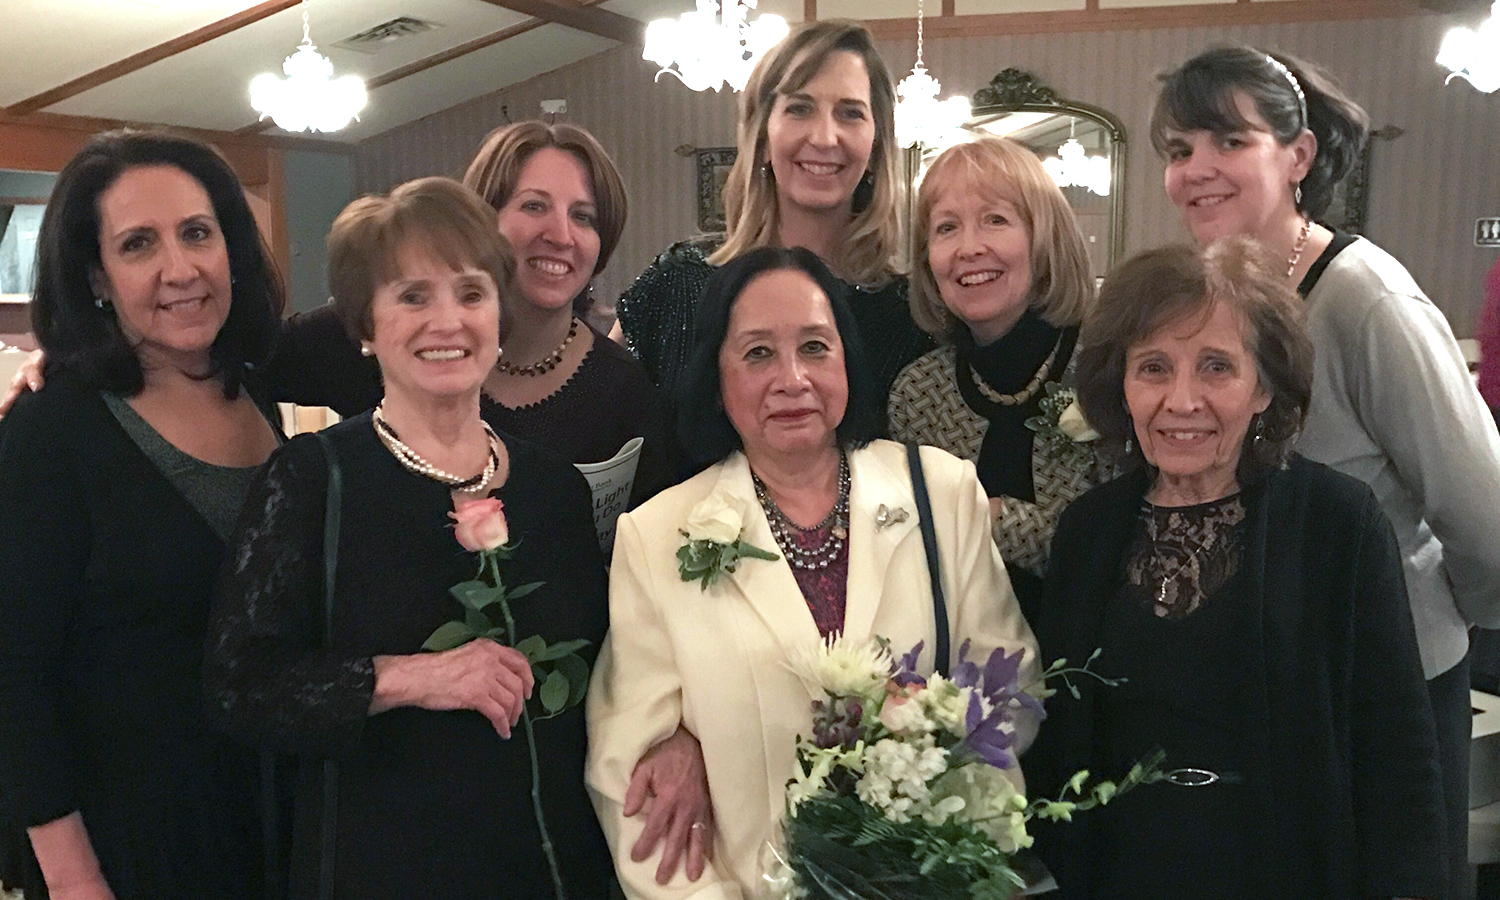 Nozzomi Williams in center (flowers)